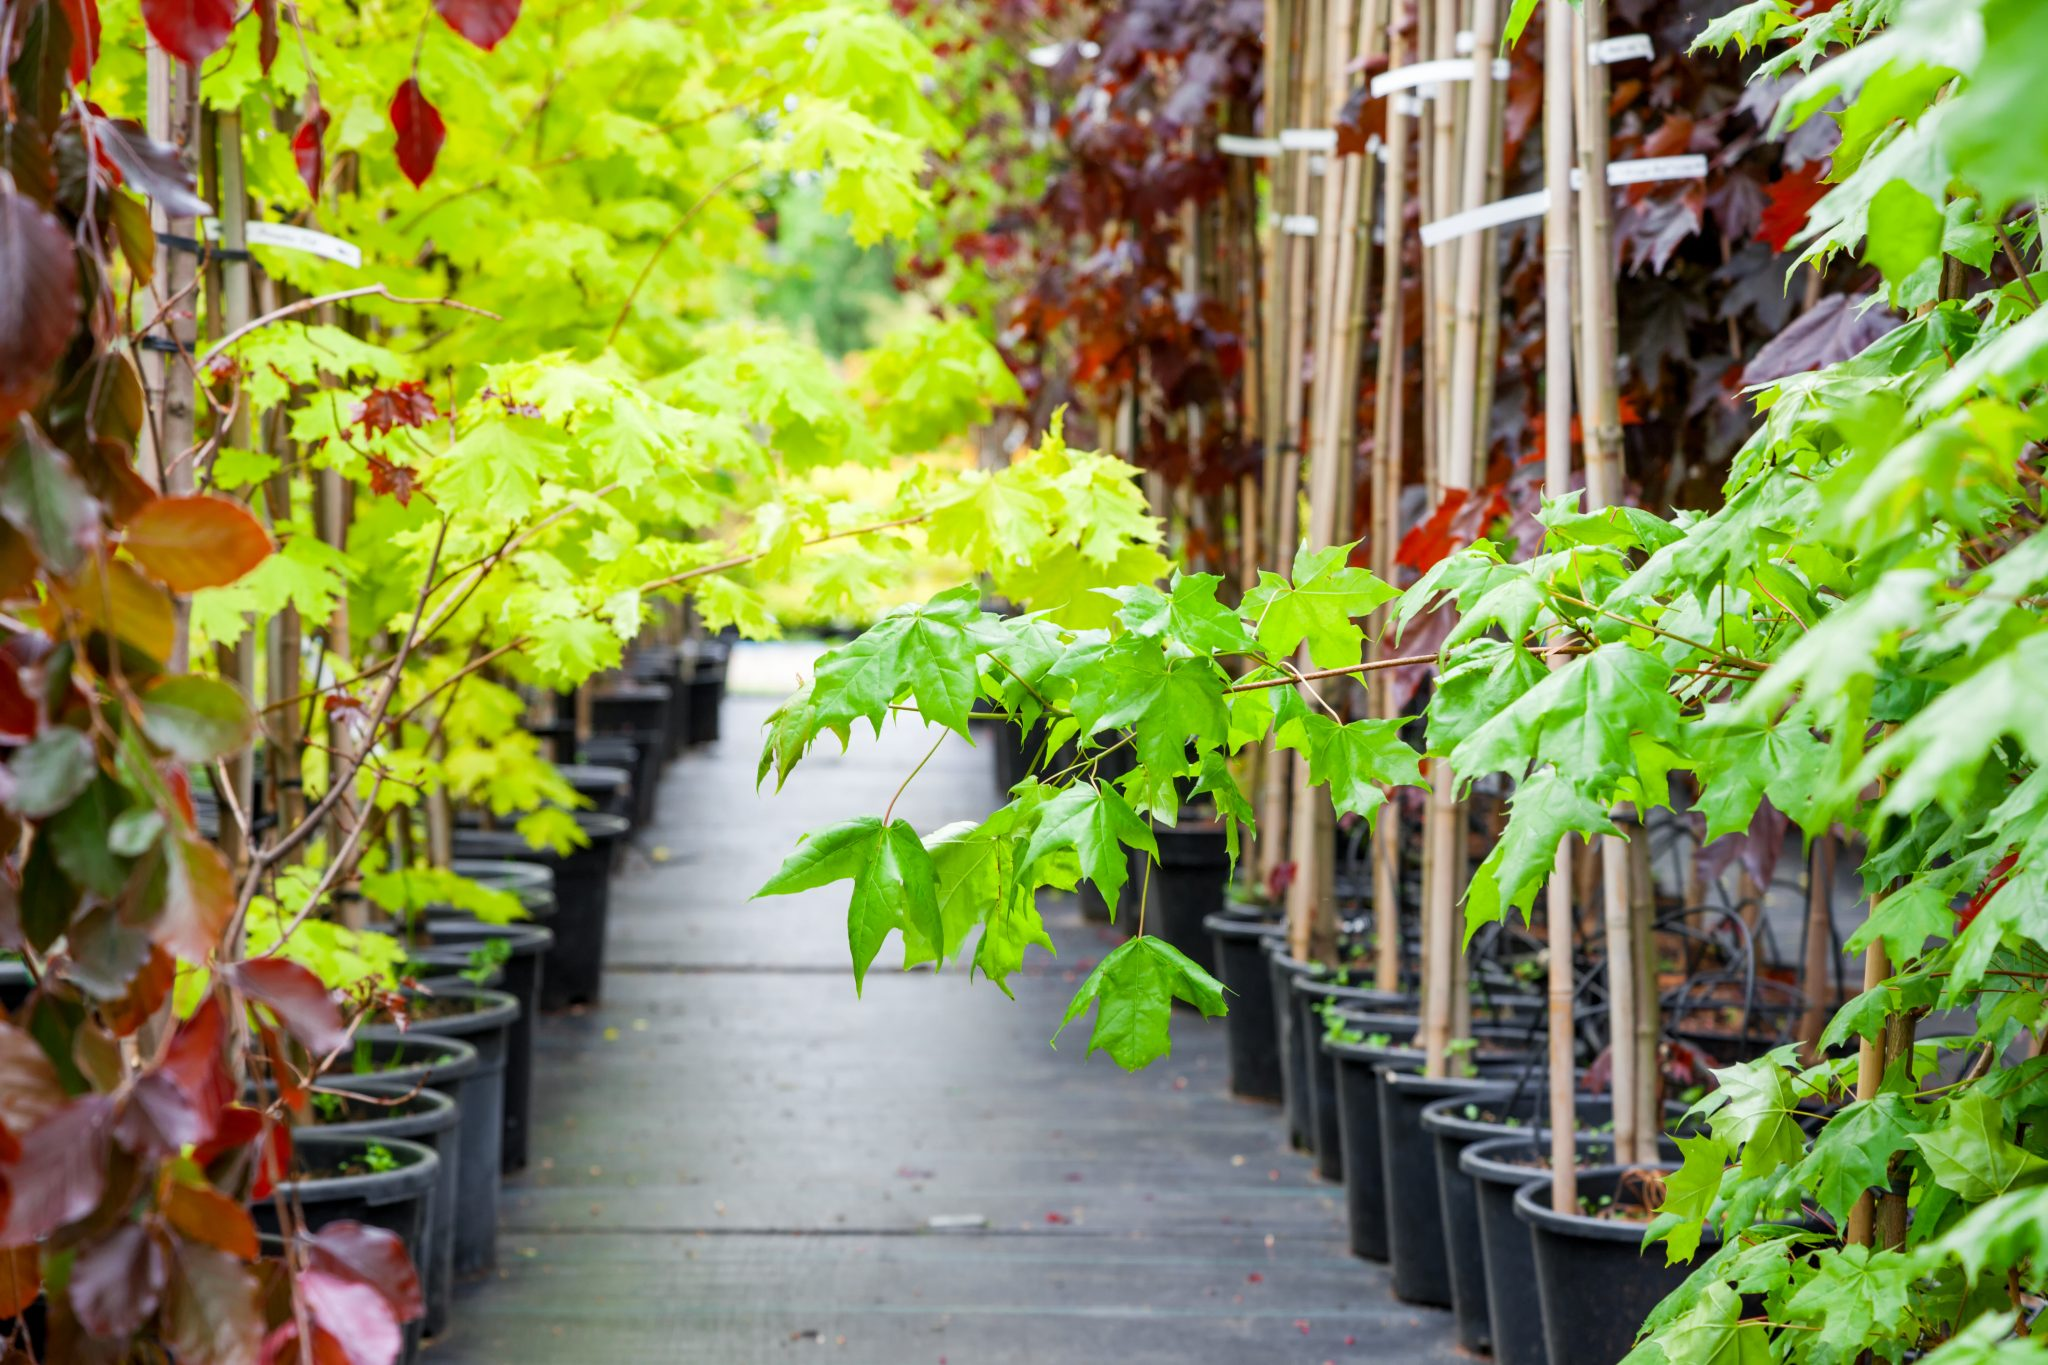 Rows of young maple trees in plastic pots on plant nursery